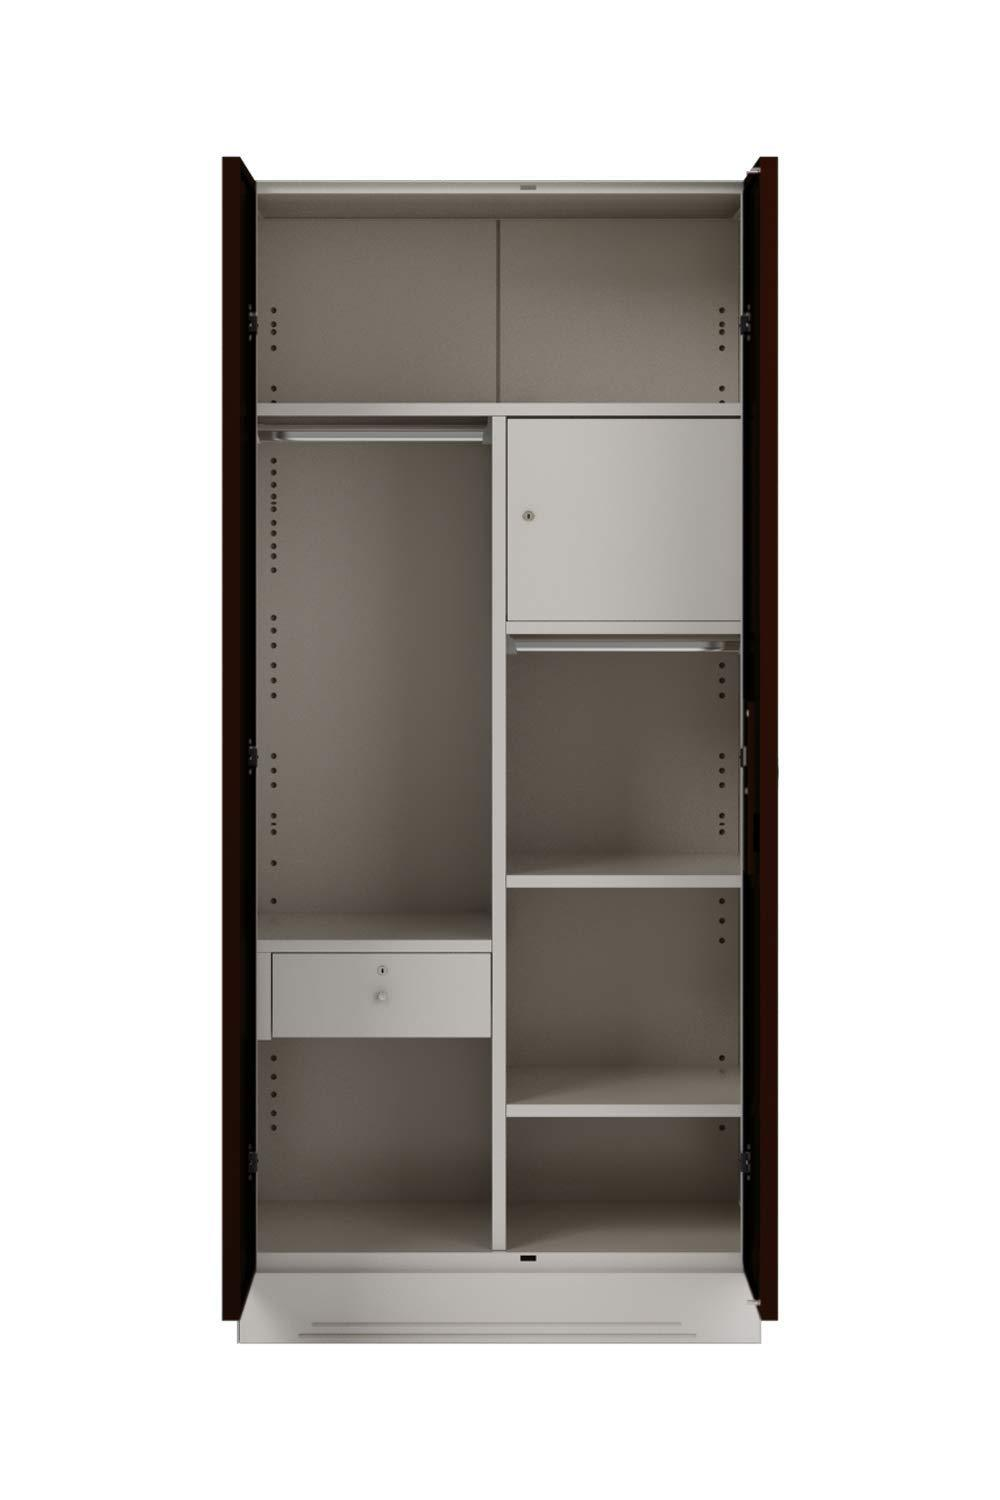 Insignia  Slimline 2 Door Almirah with 7 Shelves and Drawer (Glossy Finish, Russet)